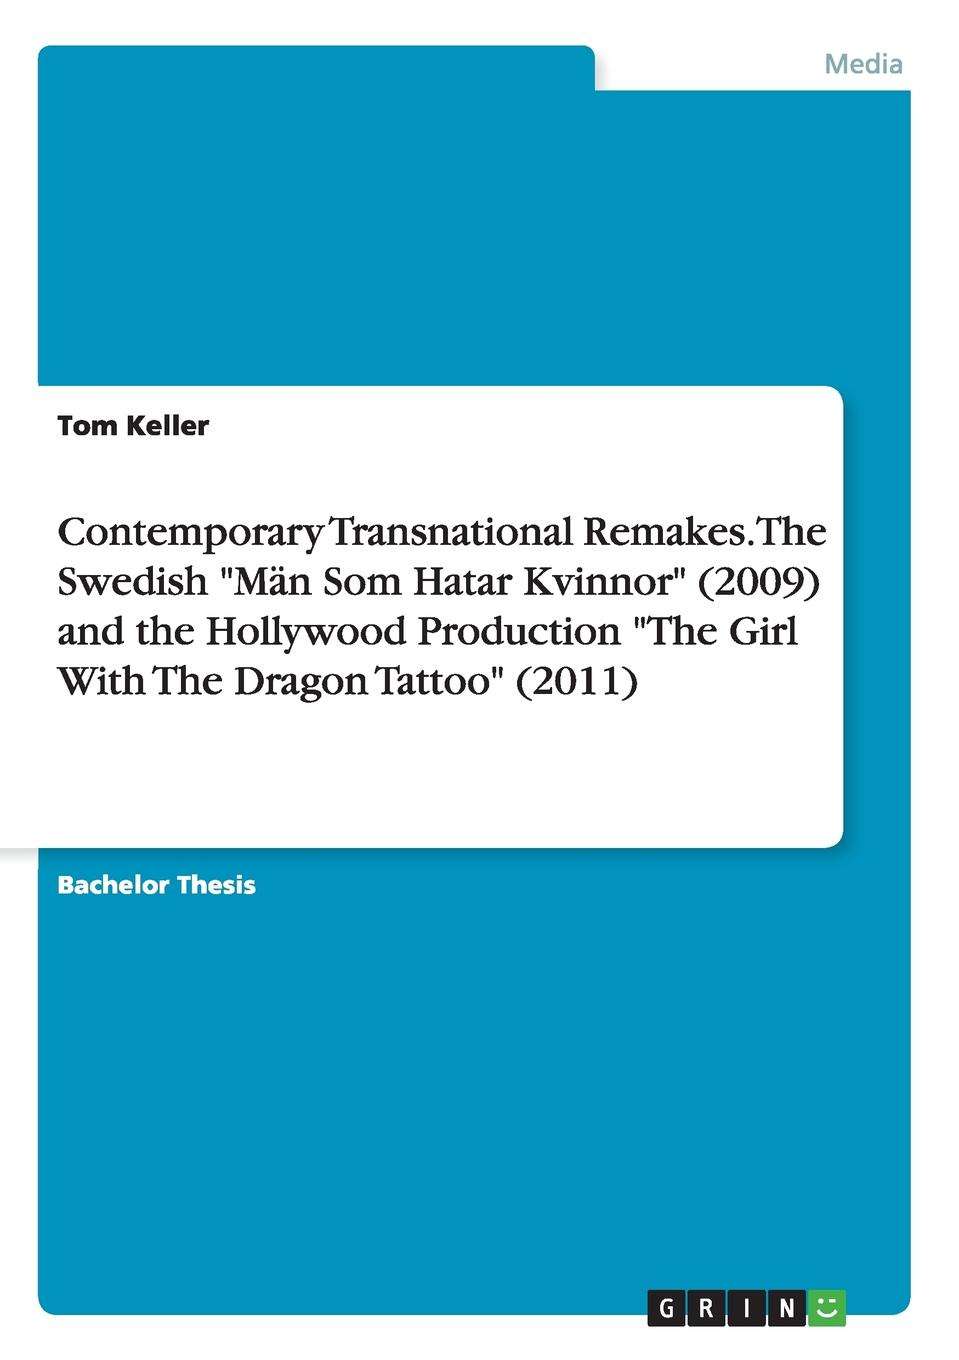 Tom Keller Contemporary Transnational Remakes. The Swedish Man Som Hatar Kvinnor (2009) and the Hollywood Production The Girl With The Dragon Tattoo (2011) robert eberwein the hollywood war film